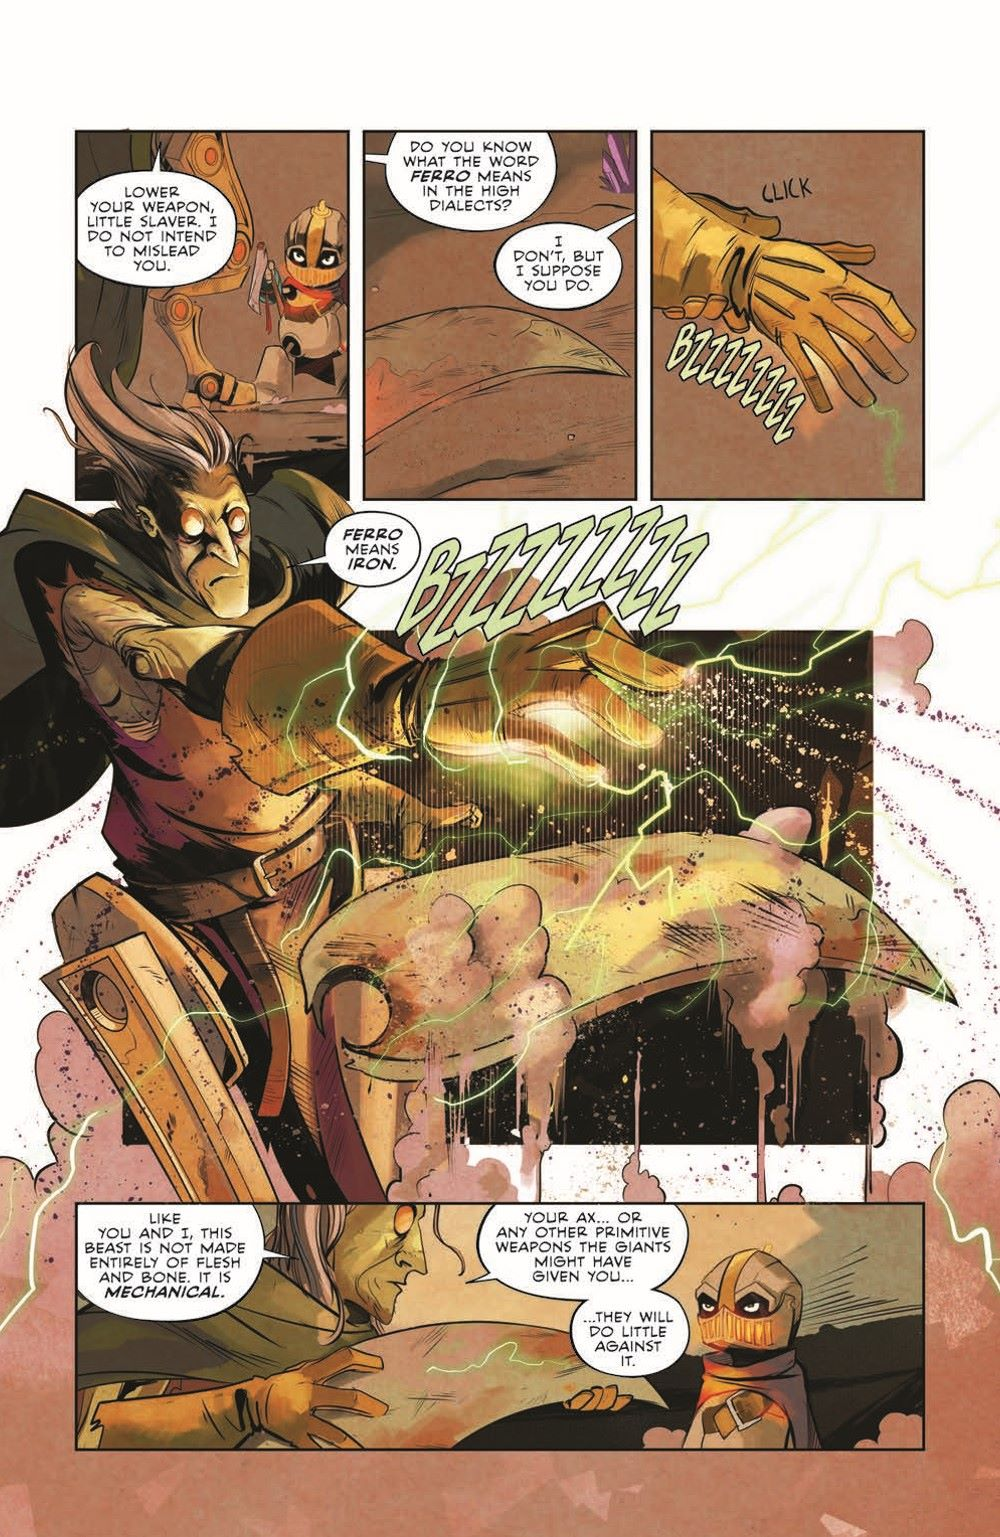 Canto-CoG02_pr-7 ComicList Previews: CANTO AND THE CITY OF GIANTS #2 (OF 3)